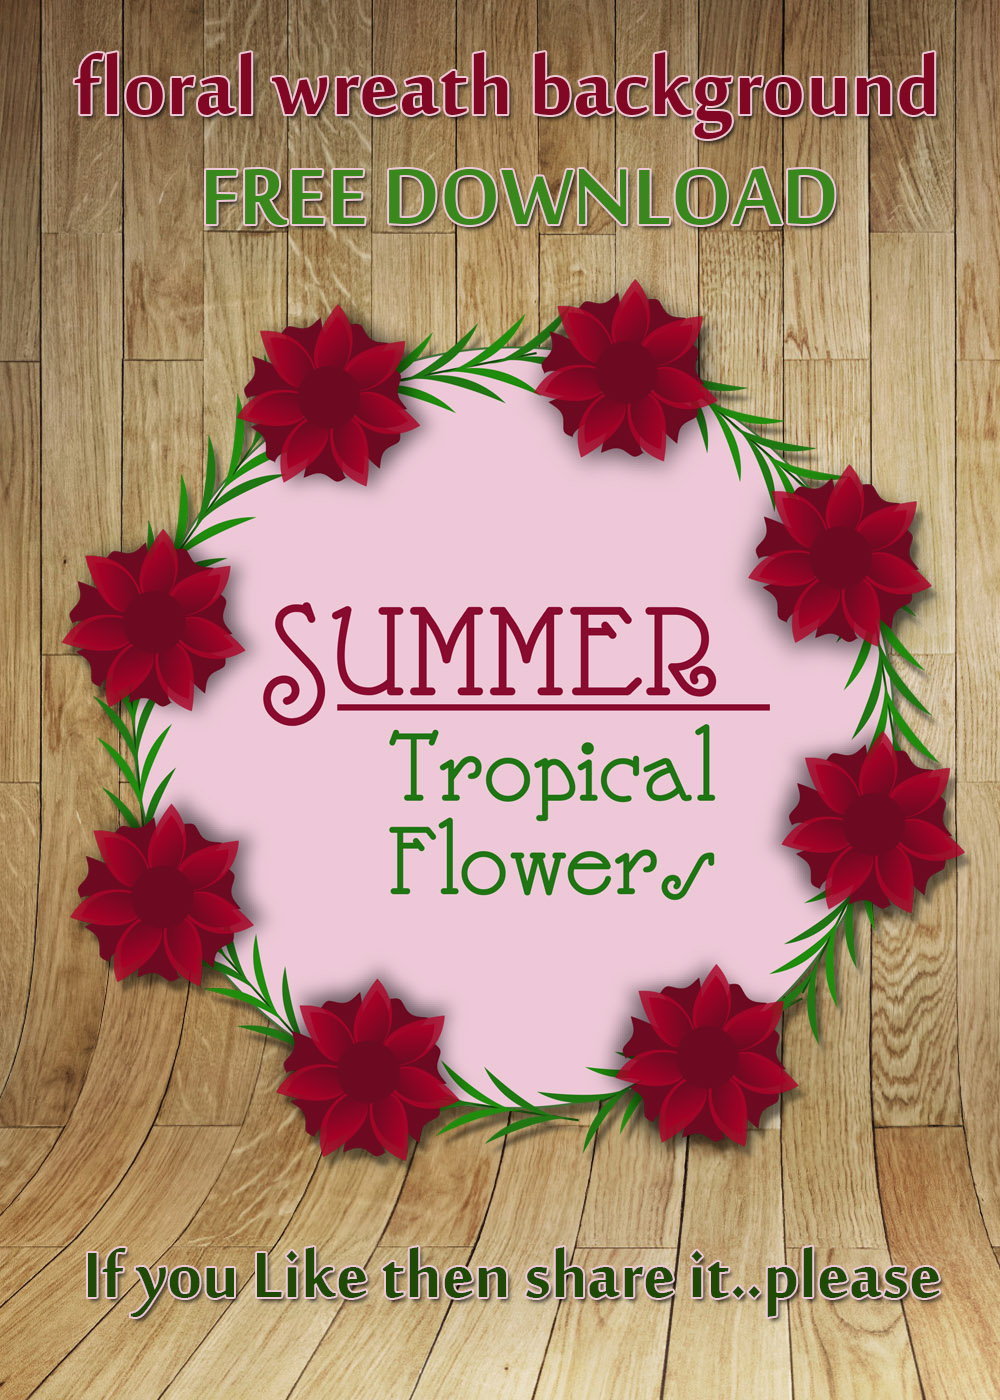 floral wreath background